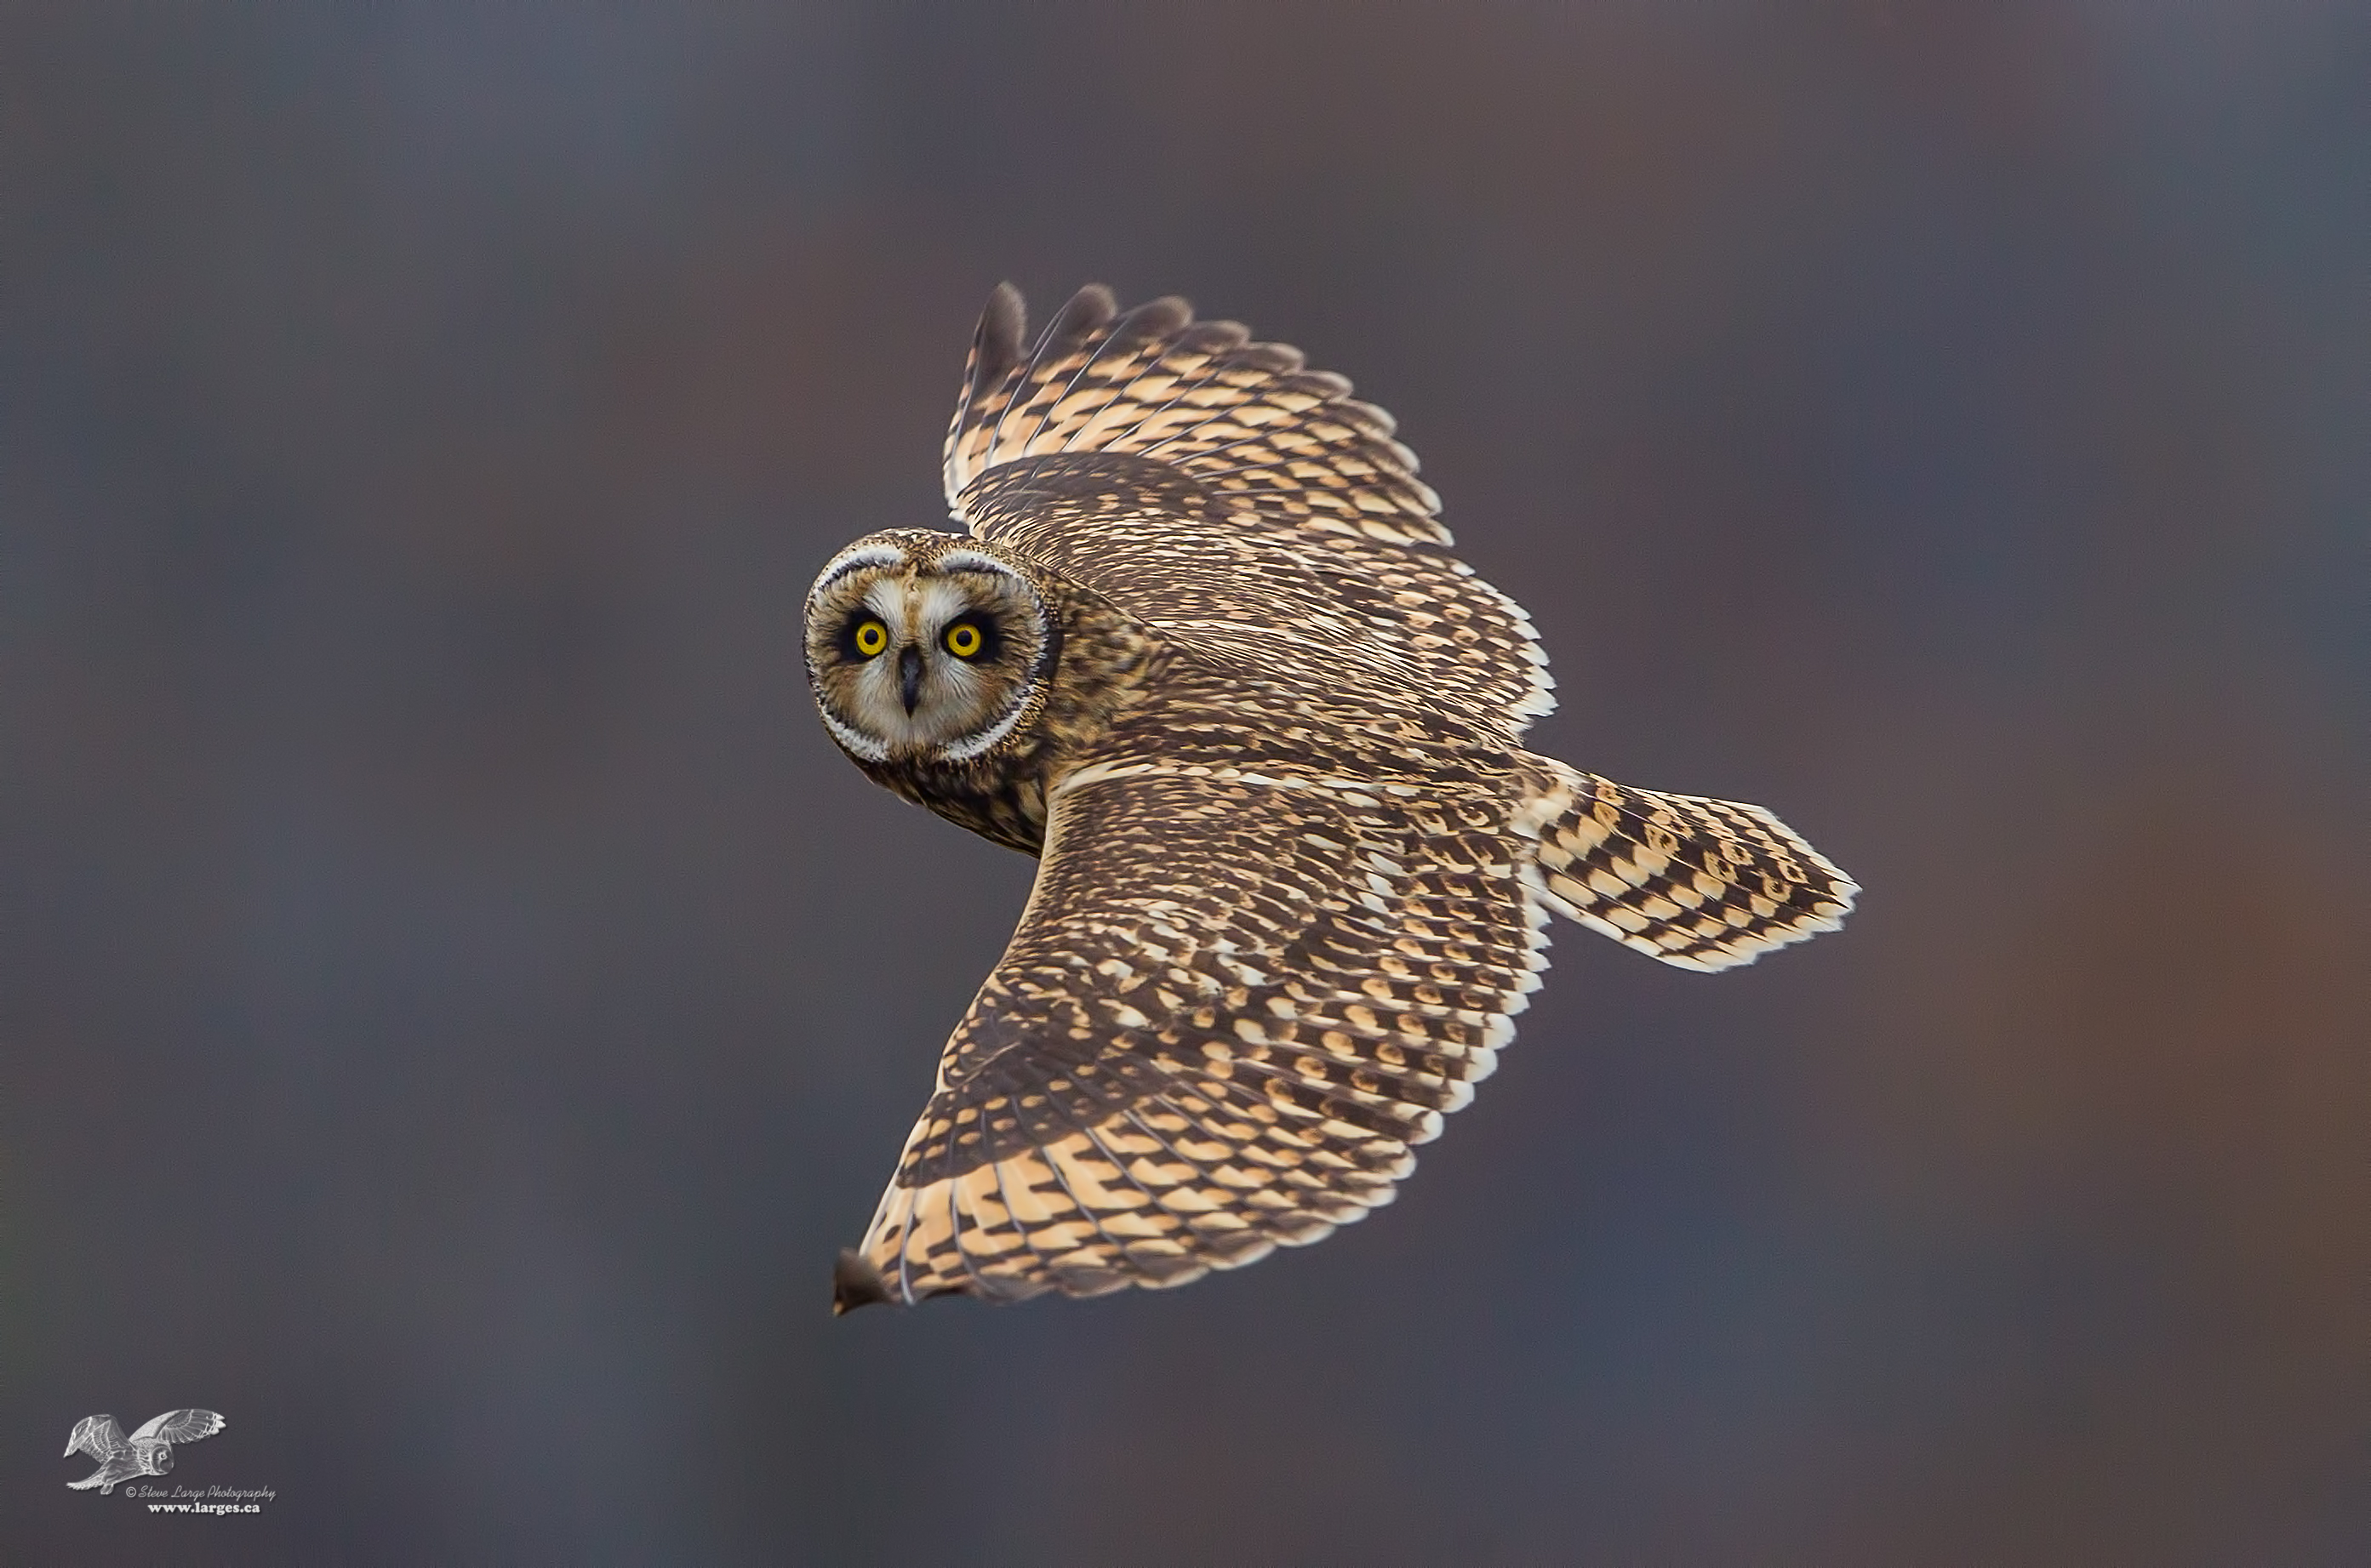 Autumn Background (Short-Eared Owl)